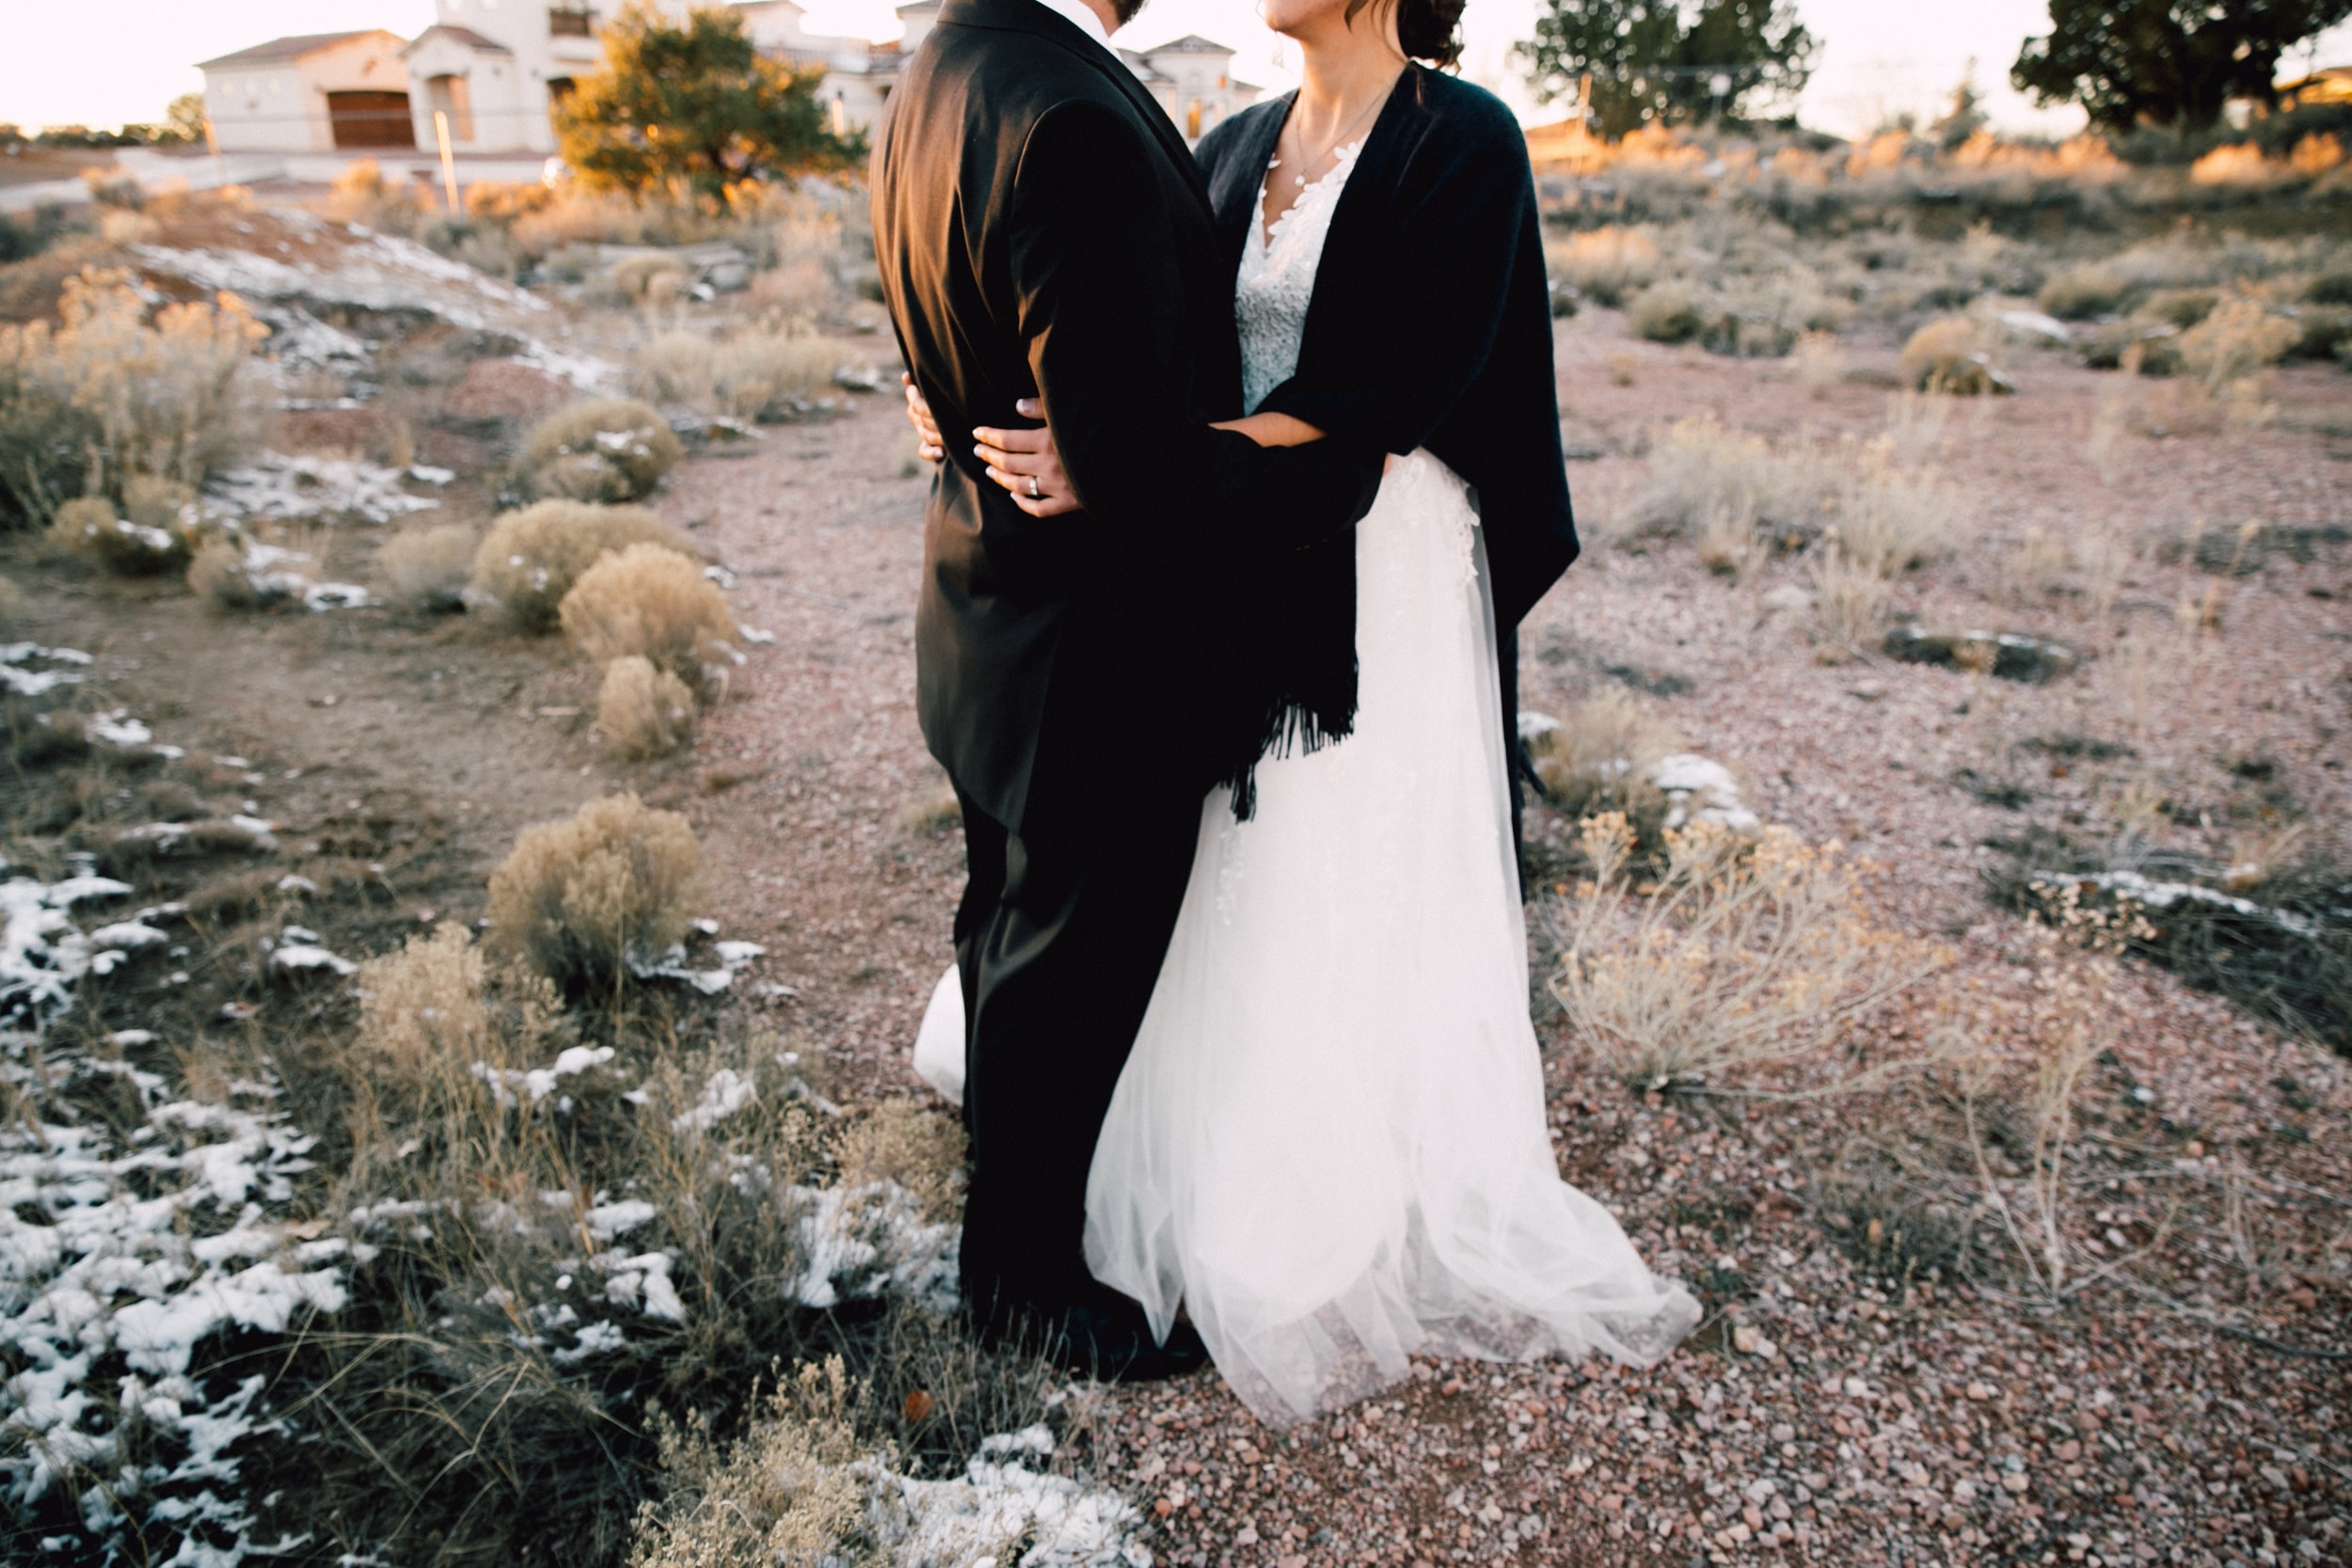 Bride and groom hold each other in Gallup at sunset